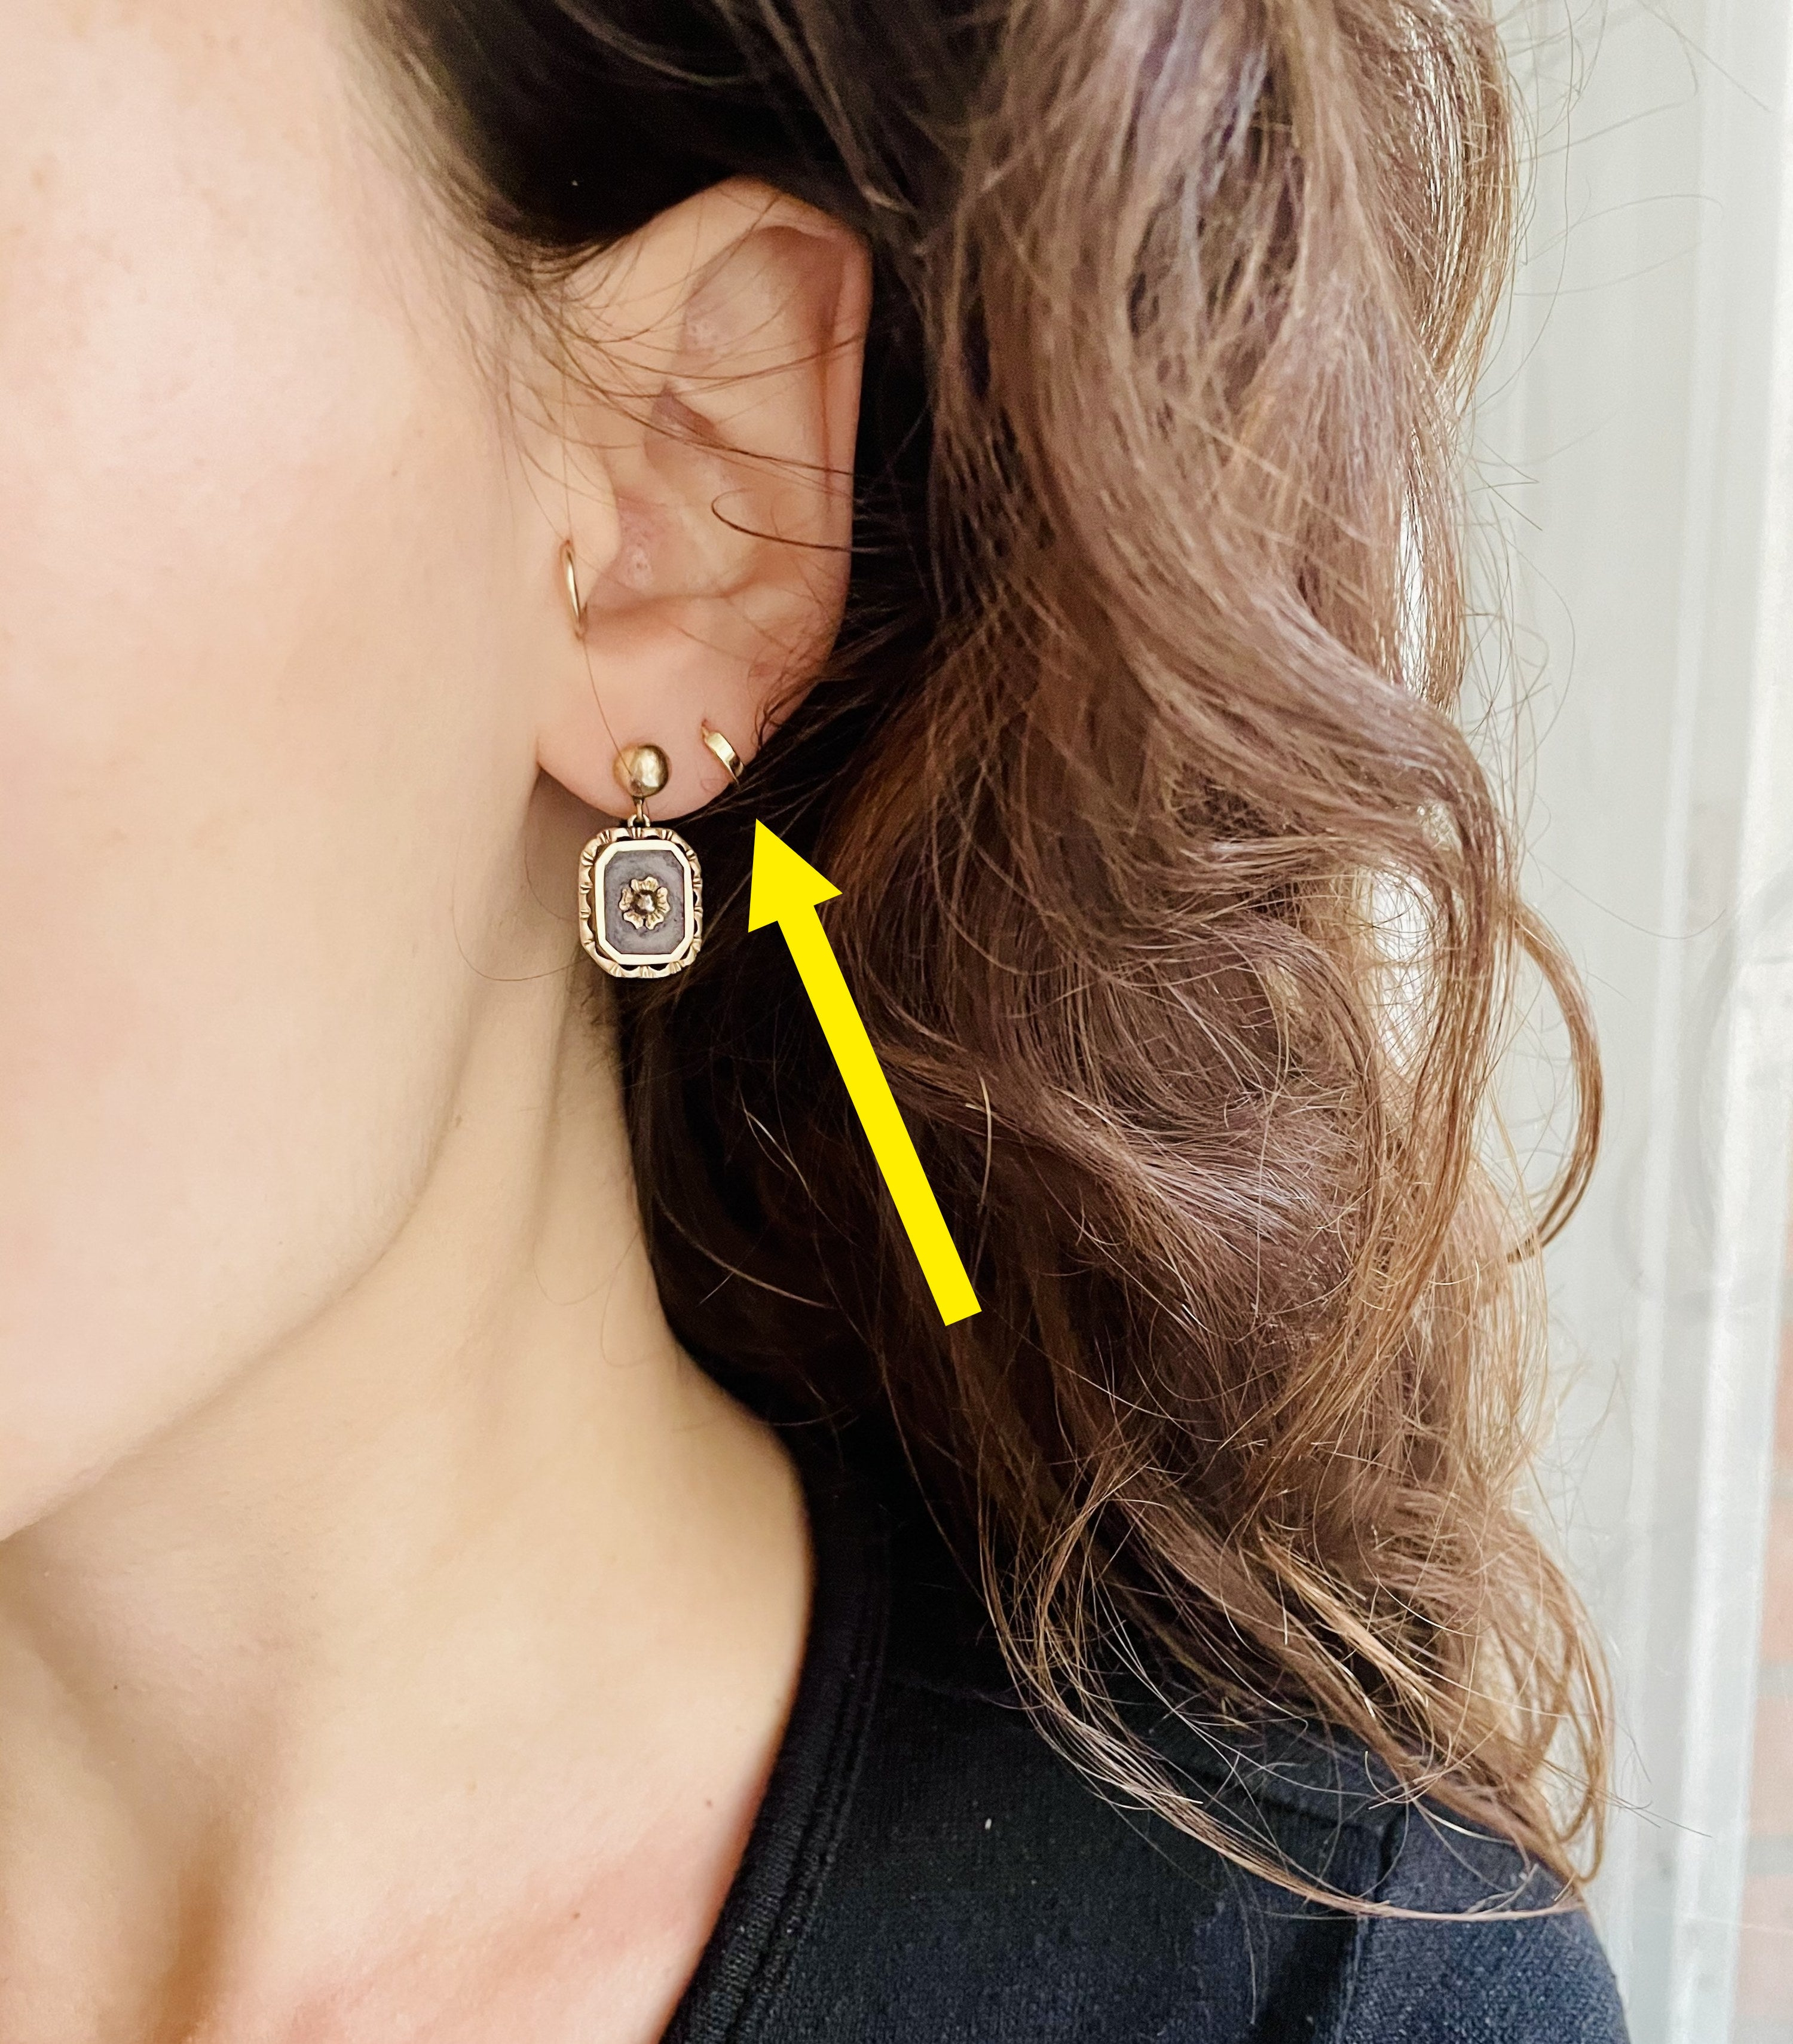 Brittany wearing earrings with an arrow pointing to the etsy hoops